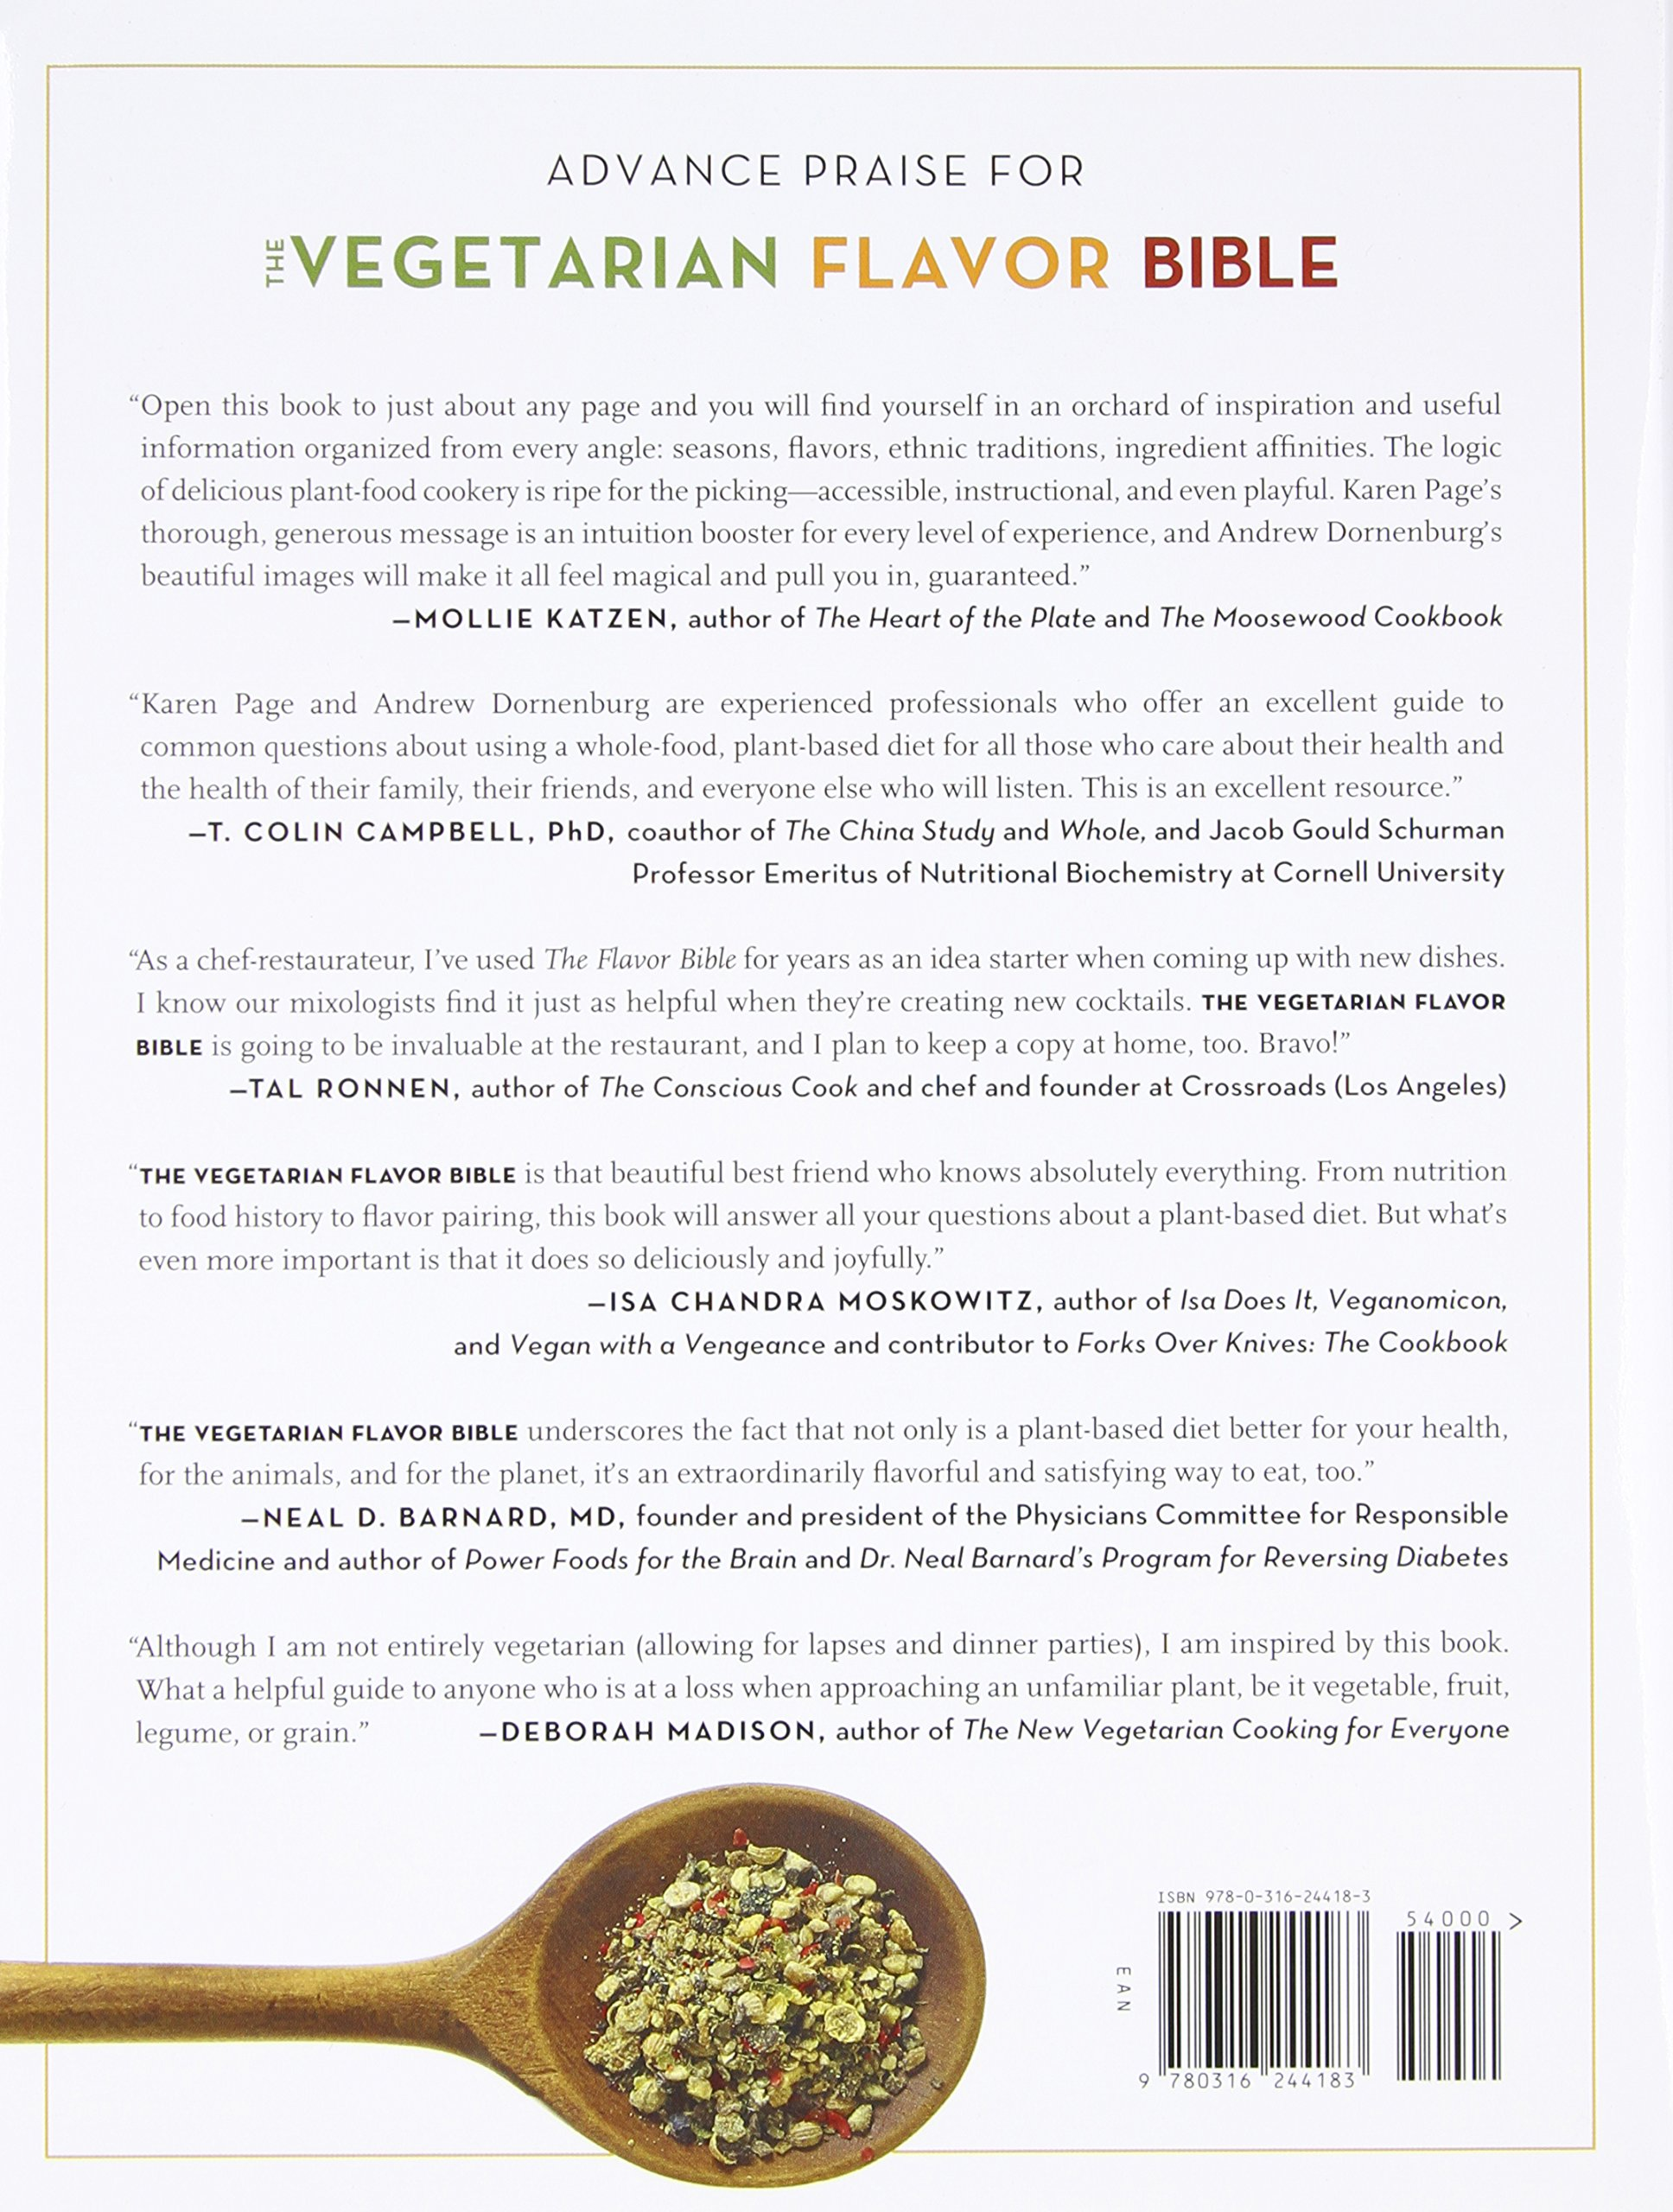 The Vegetarian Flavor Bible: The Essential Guide to Culinary Creativity with Vegetables, Fruits, Grains, Legumes, Nuts, Seeds, and More, Based on the Wisdom of Leading American Chefs by Little Brown and Company